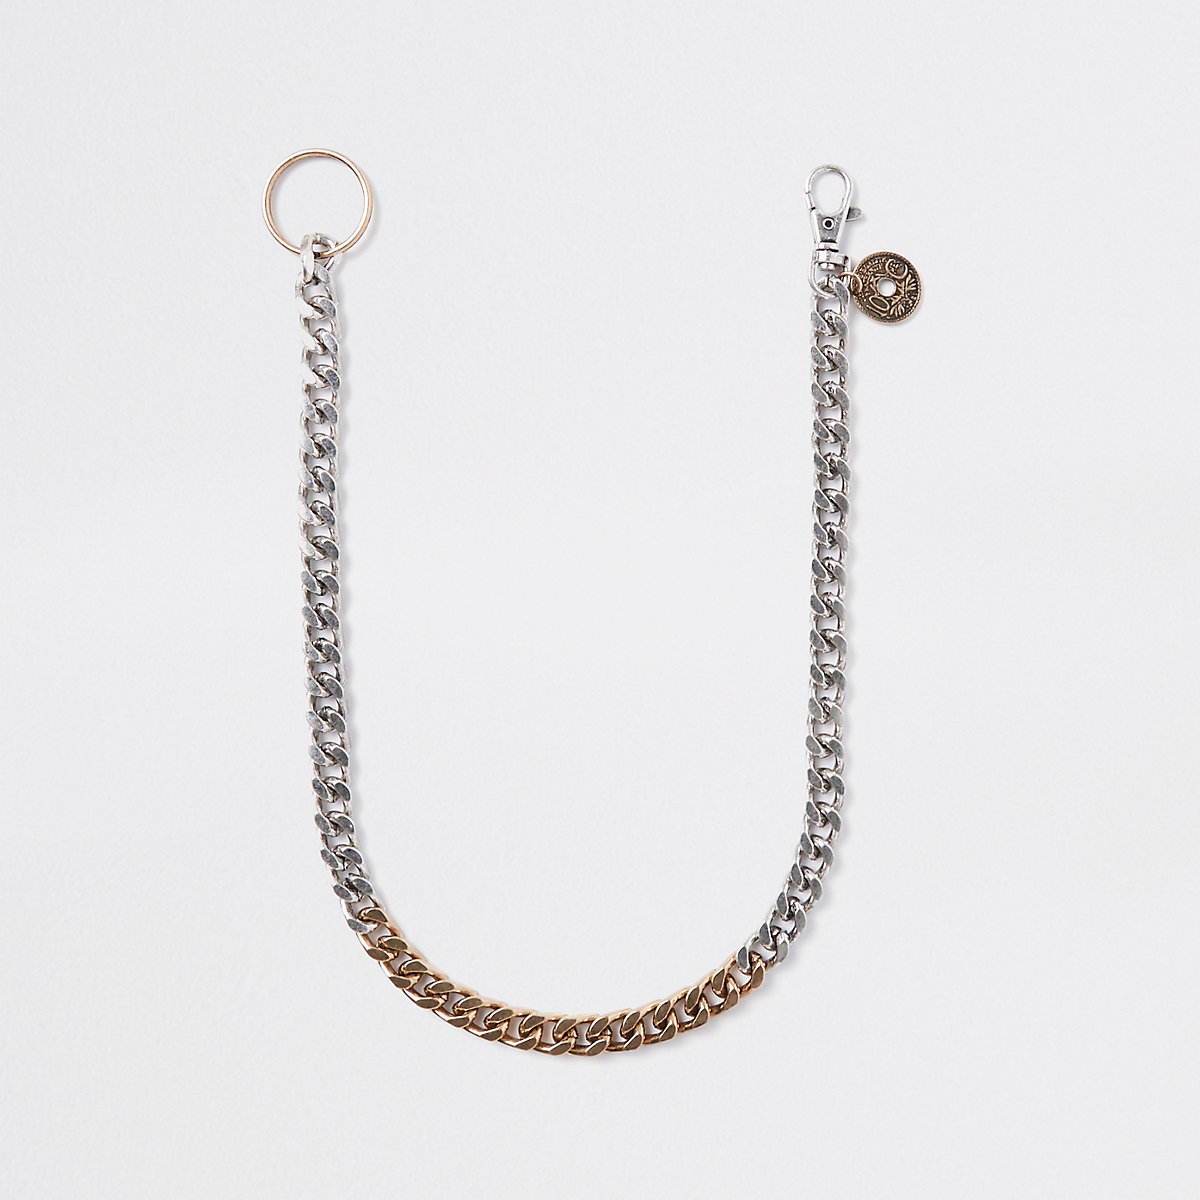 Gold and silver tone jeans chain